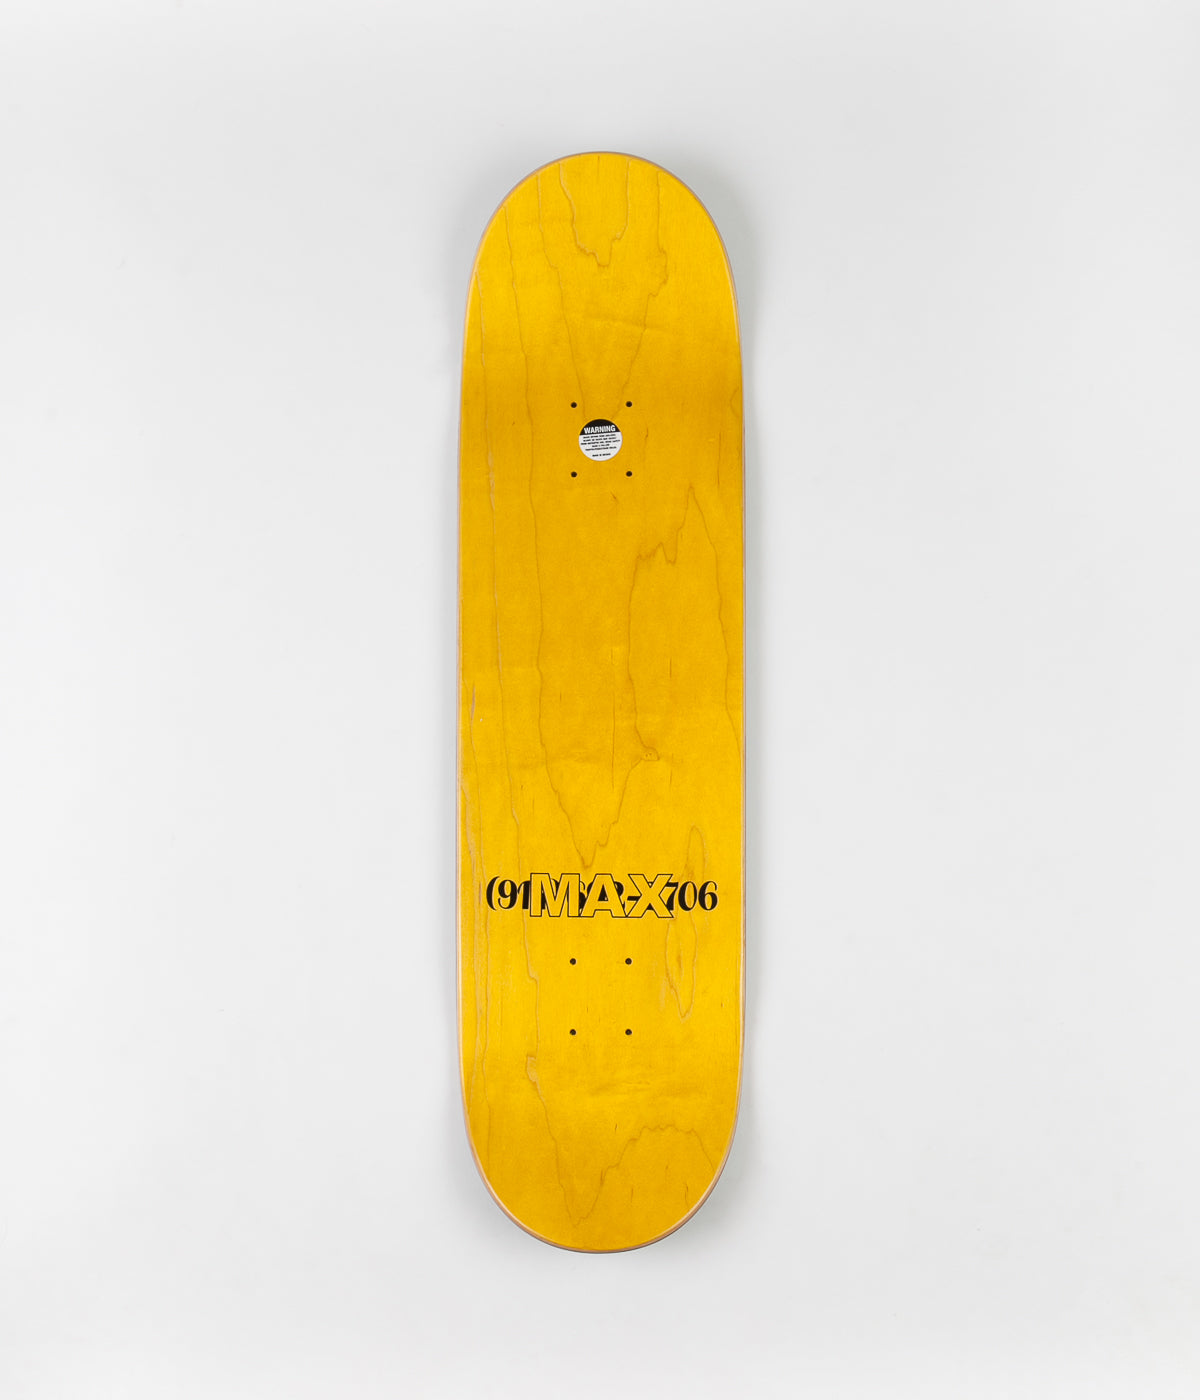 Call Me 917 Palmer Dialtone Deck - Green - 8.38""